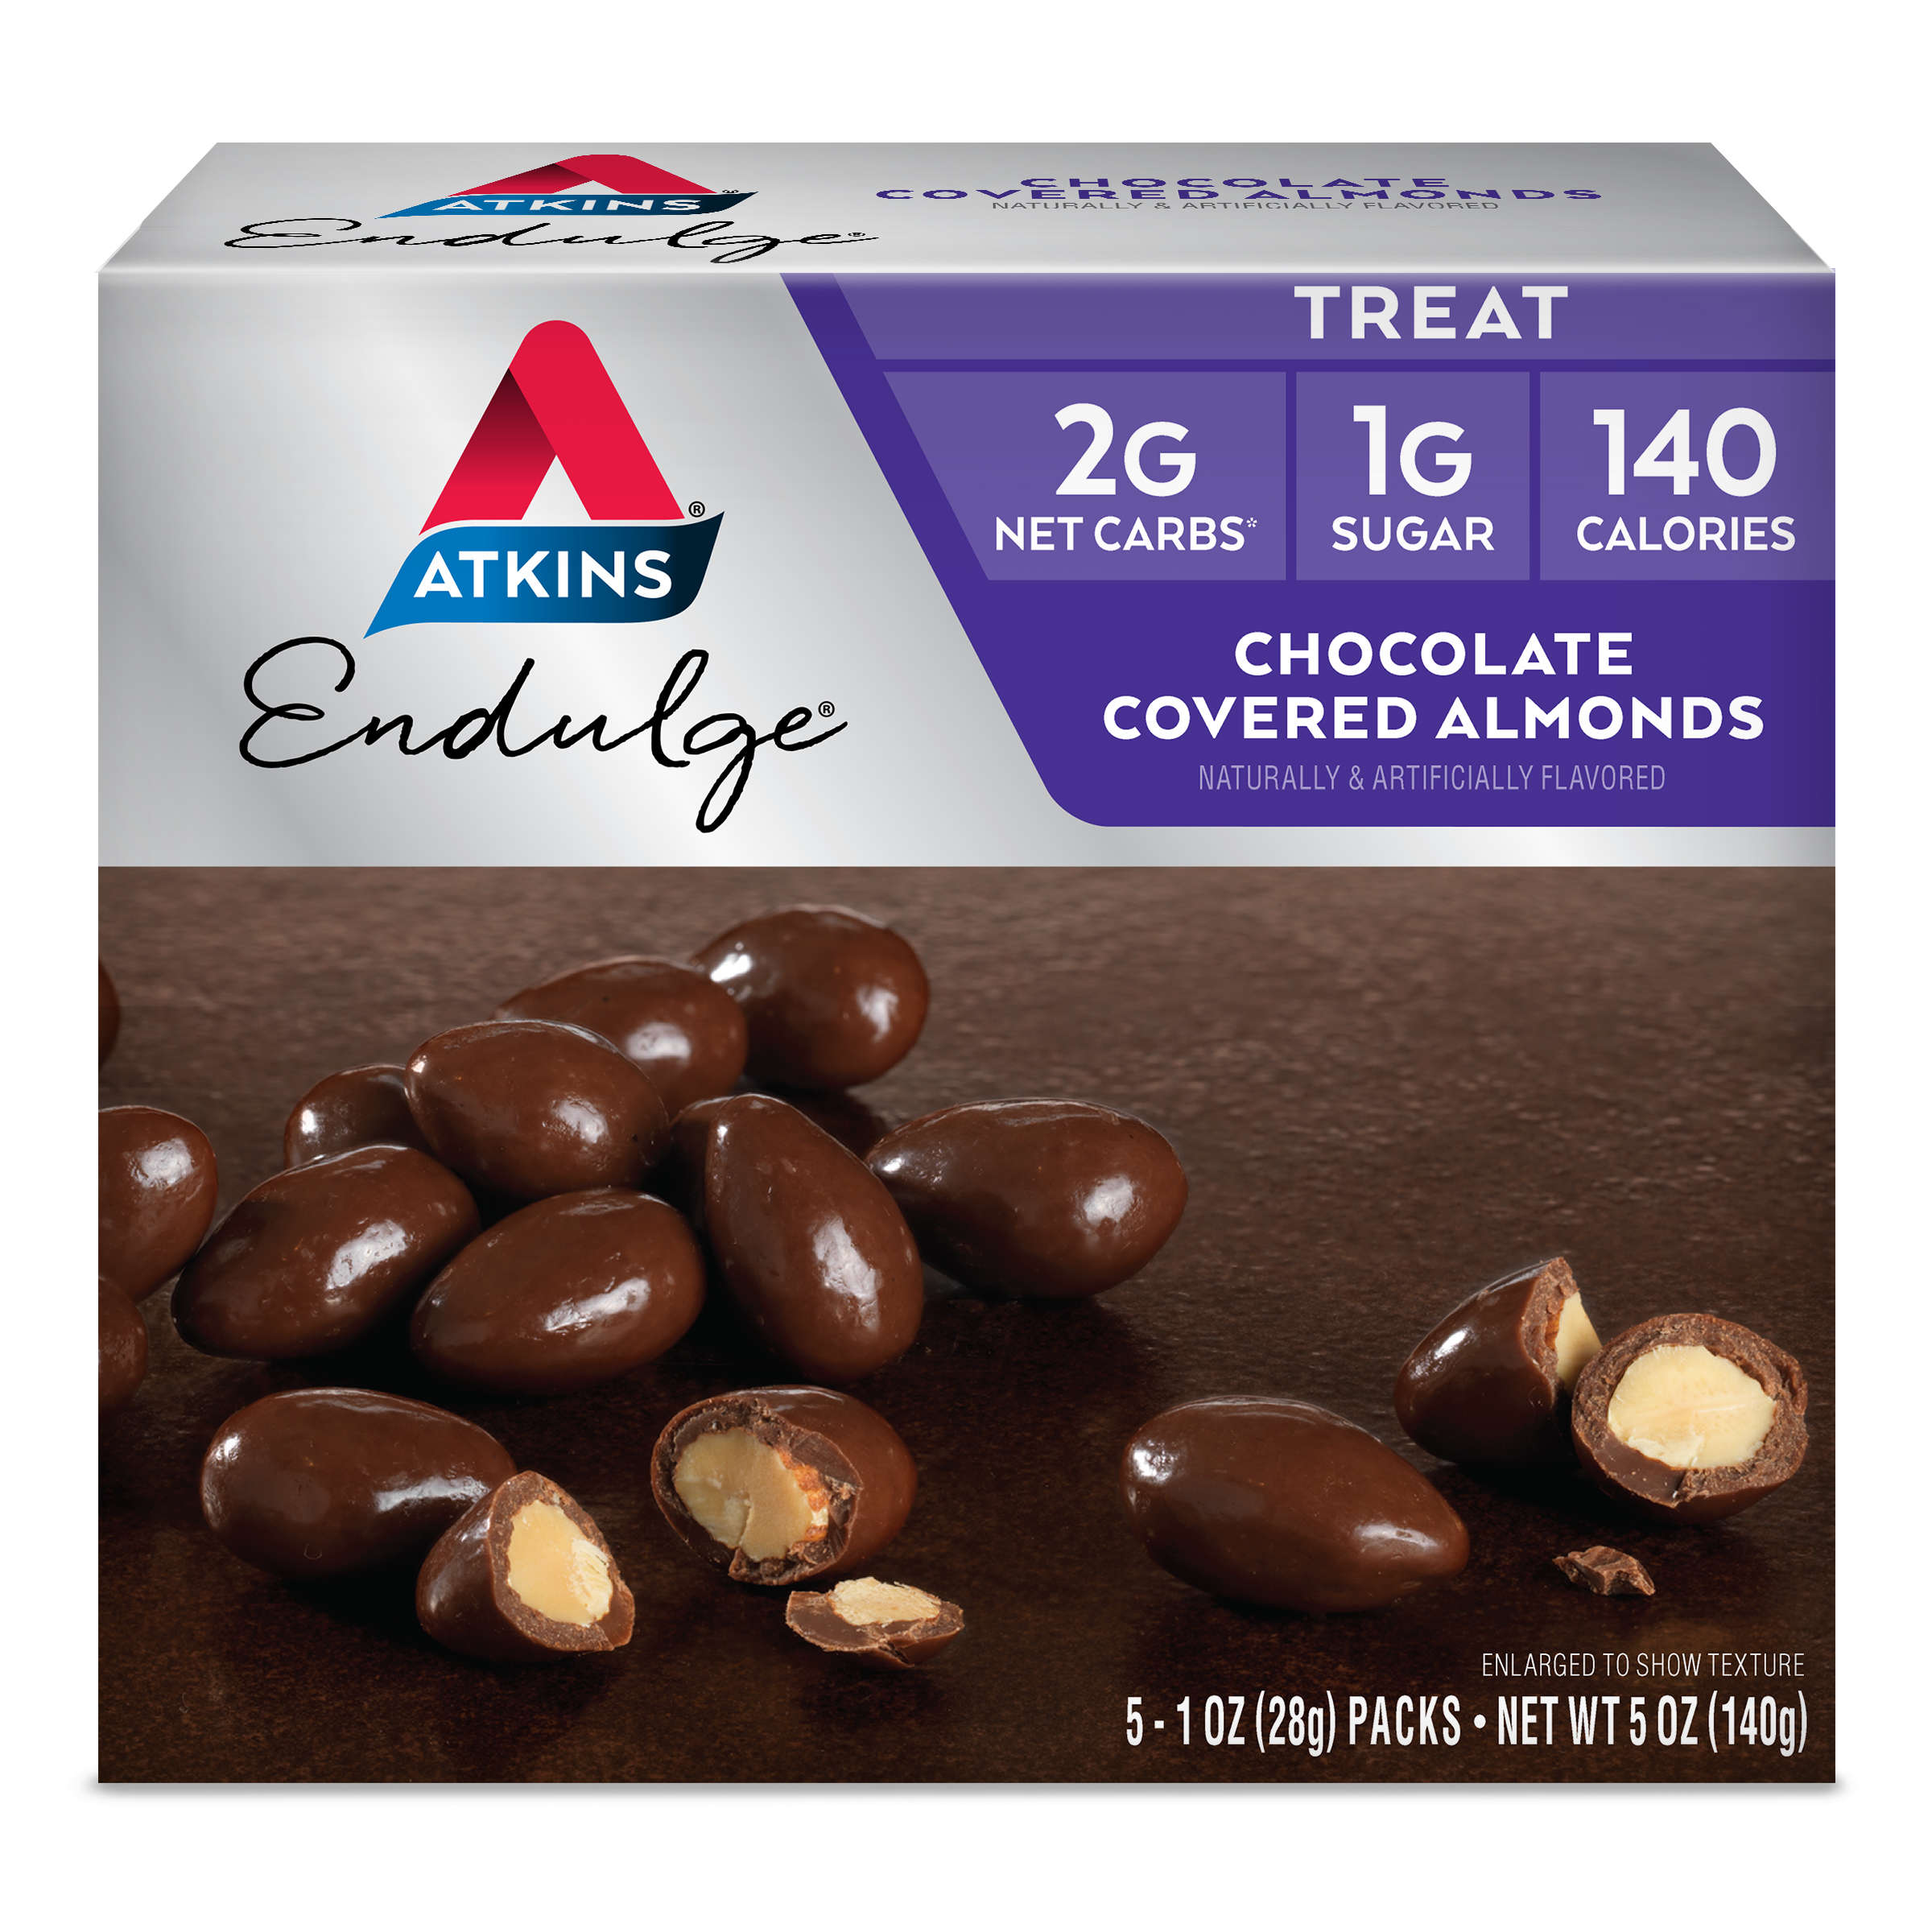 Atkins Endulge Chocolate Covered Almonds, 1oz, 5-pack (Treat)